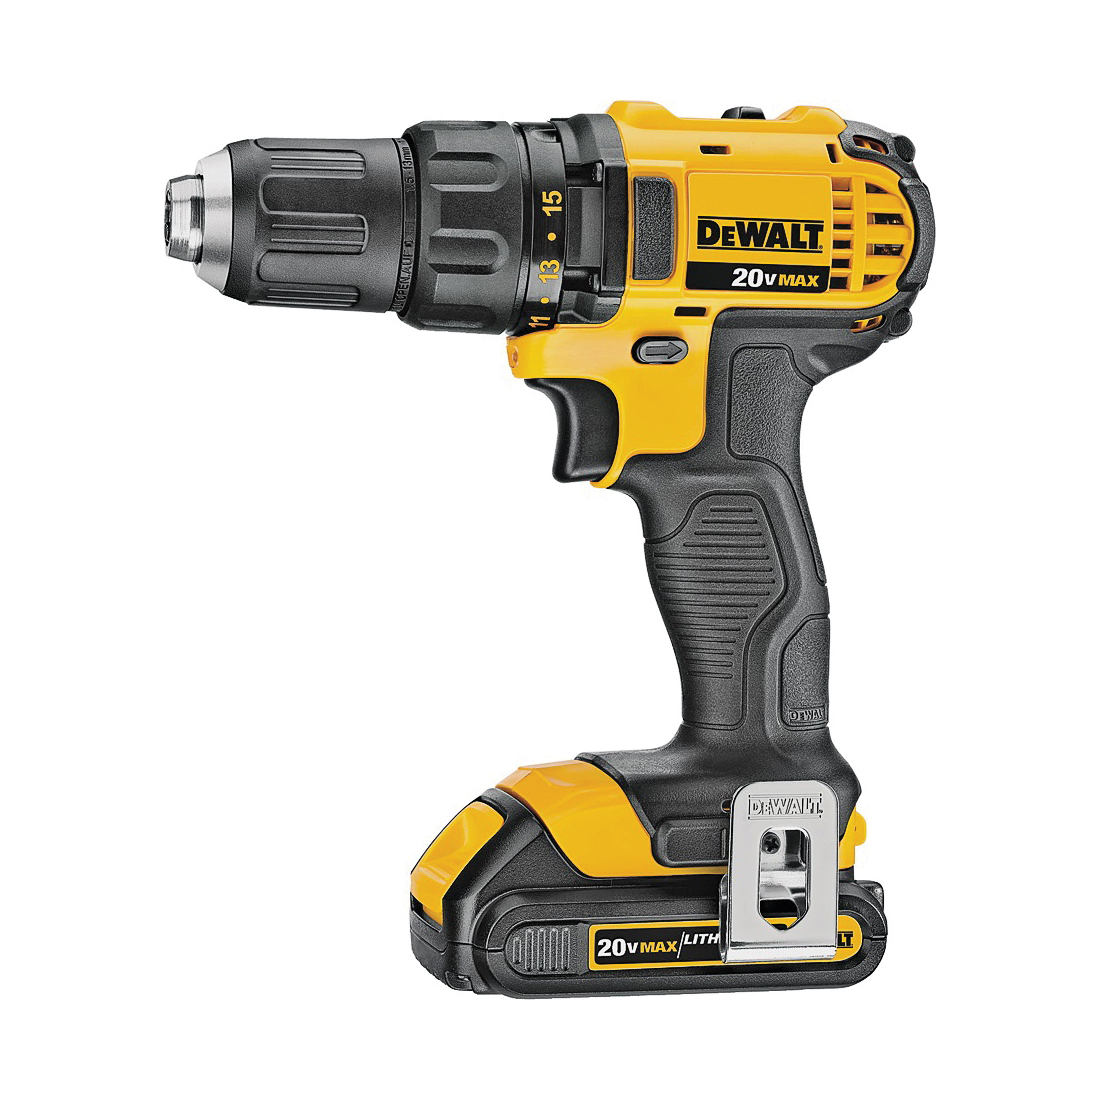 Picture of DeWALT DCD780C2 Drill/Driver Kit, Kit, 20 V Battery, 1/2 in Chuck, Keyless, Ratcheting Chuck, Battery Included: Yes